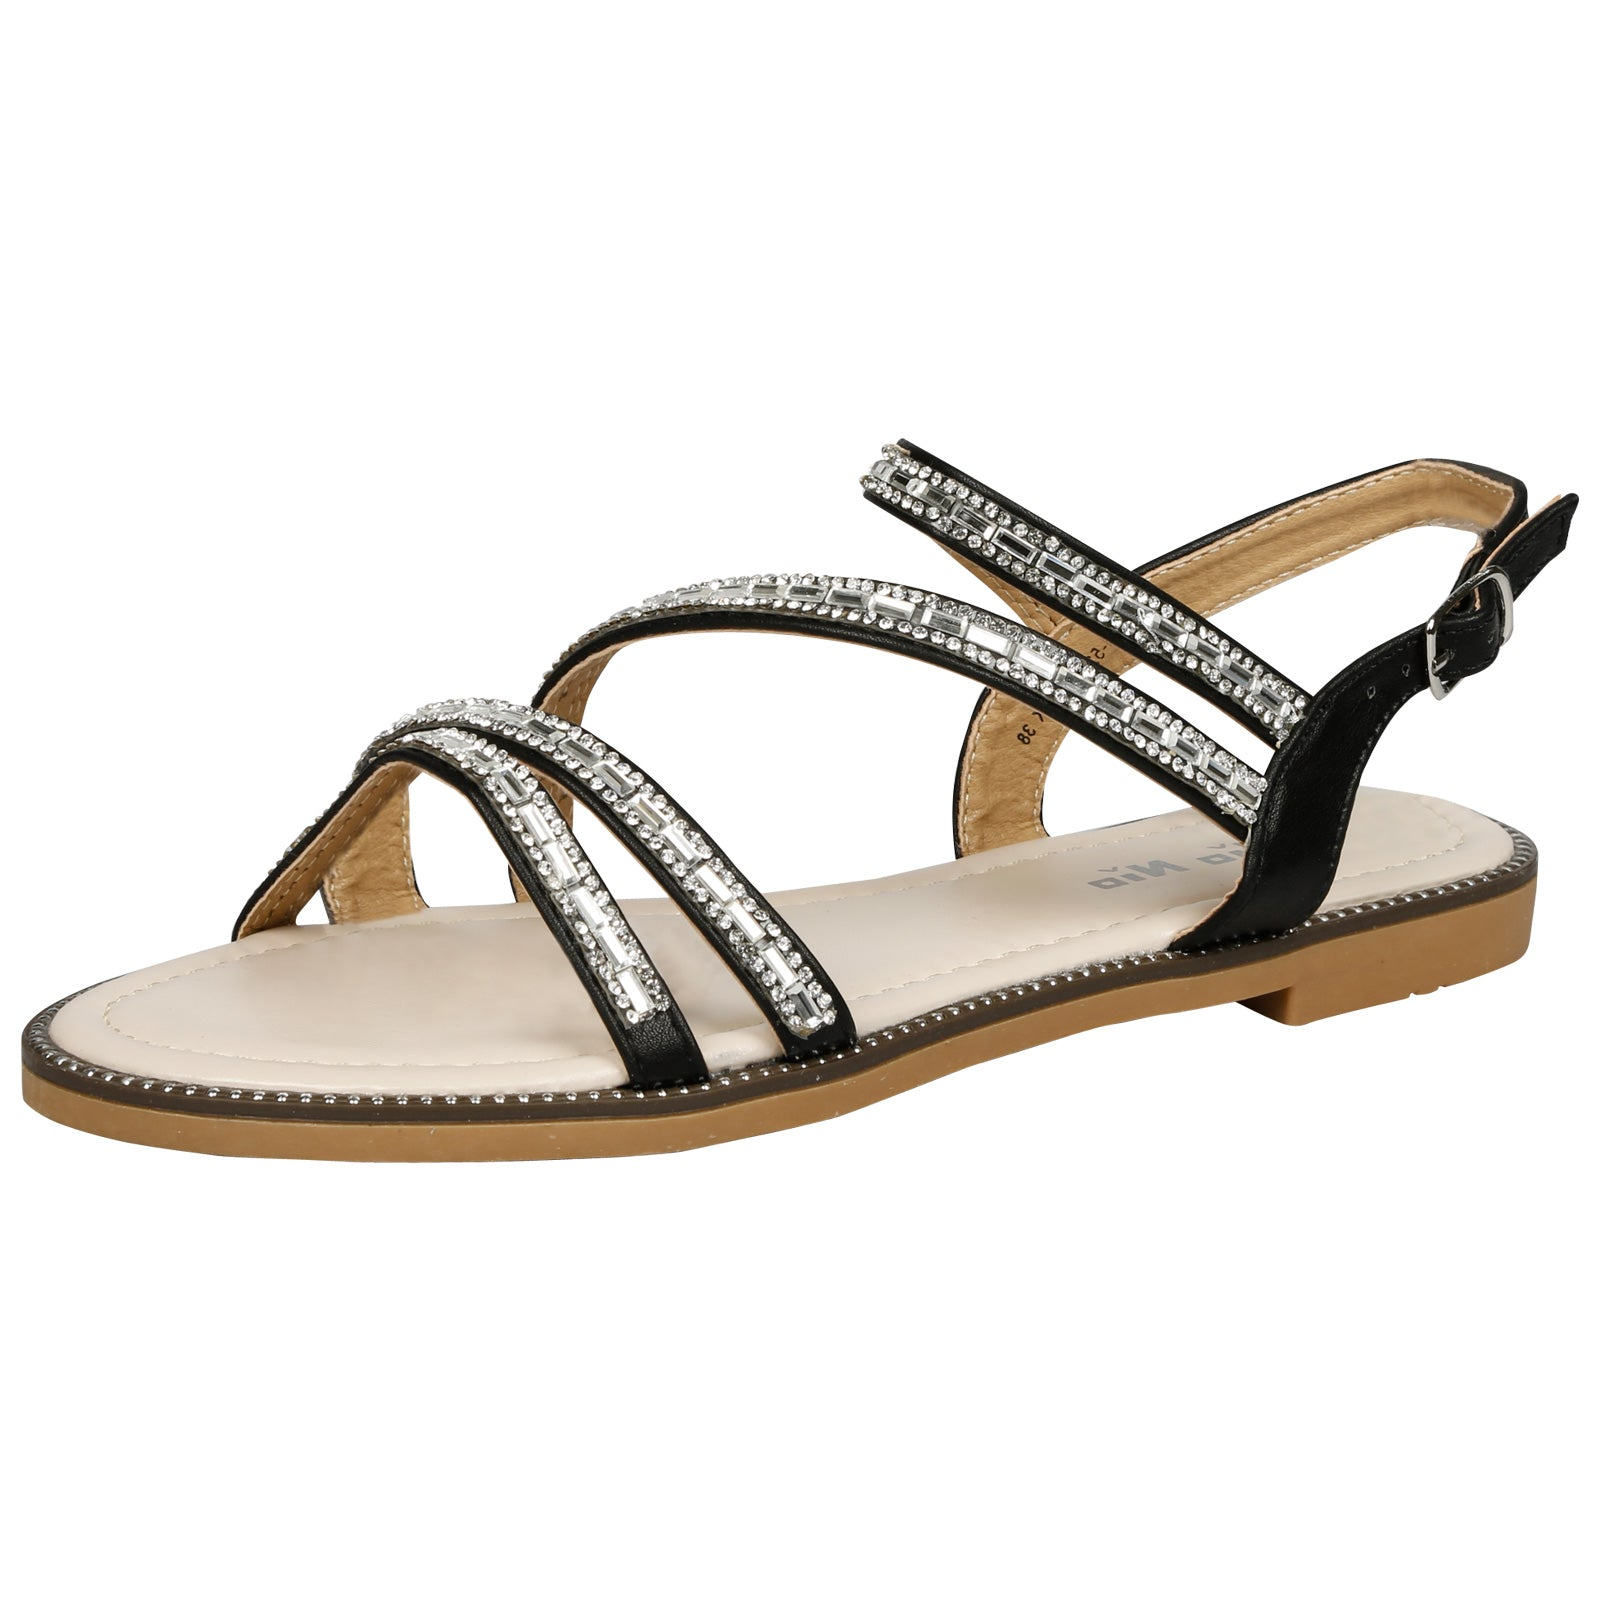 Lainey Flat Diamante Embellished Sandals in Black Faux Leather - Feet First Fashion